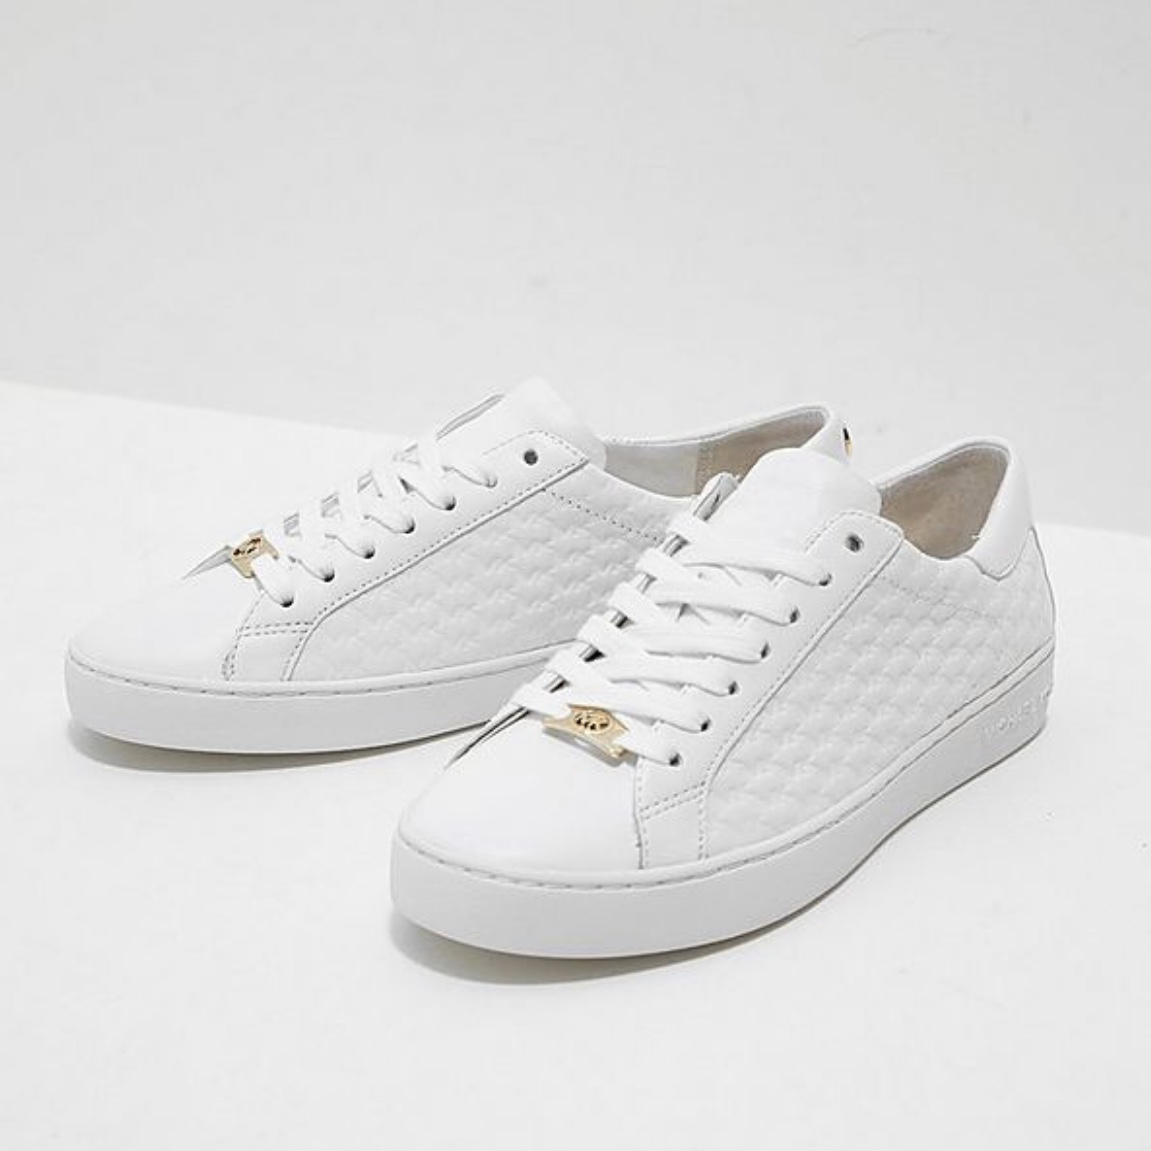 Michael kors Colby trainers / sneakers